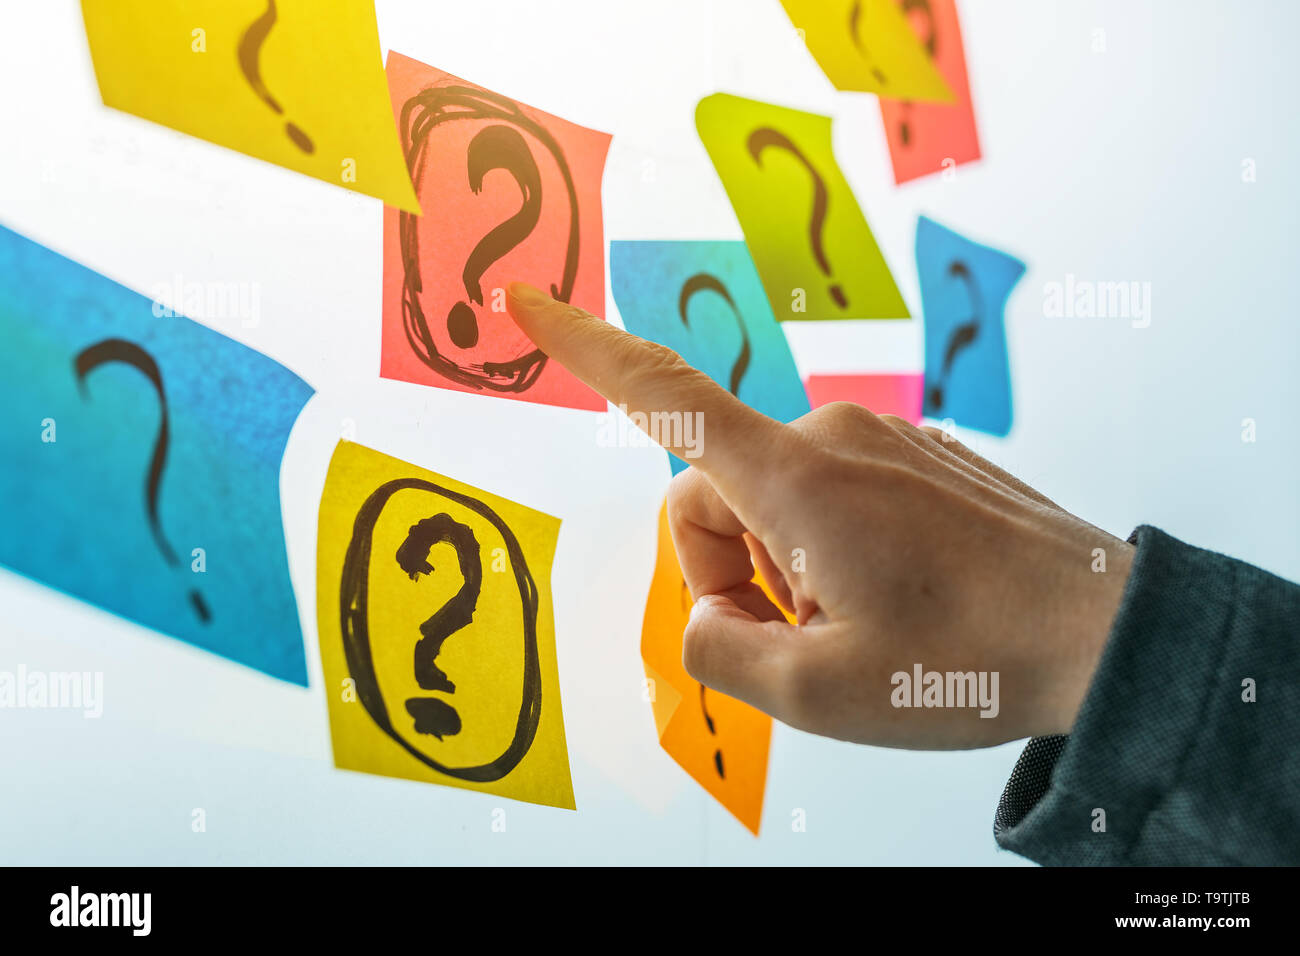 Businesswoman asking questions in business situation, female business person hand pointing to question marks written on colorful sticky note paper - Stock Image